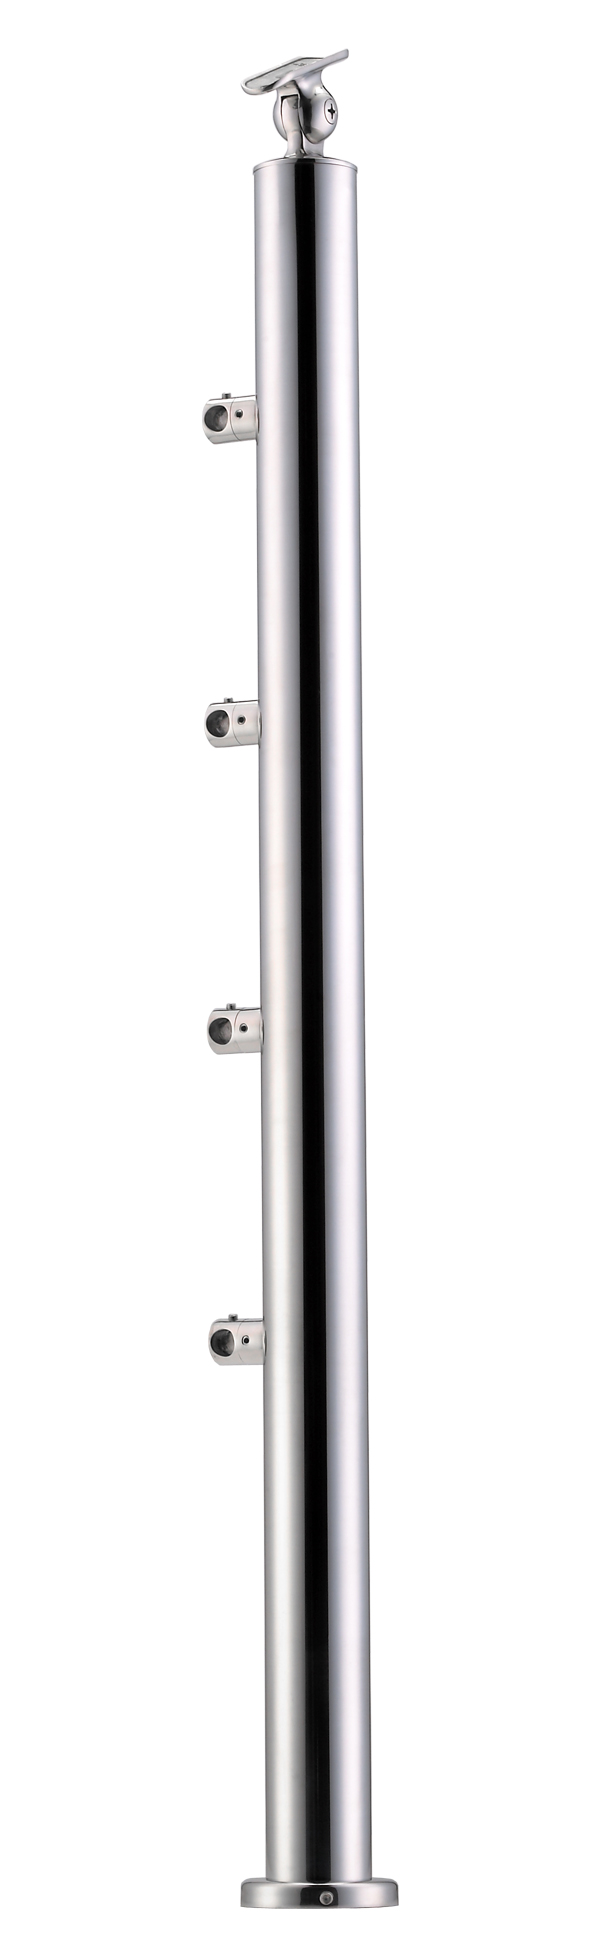 Stainless Steel Balustrade Posts - Tubular - SS:2020458A